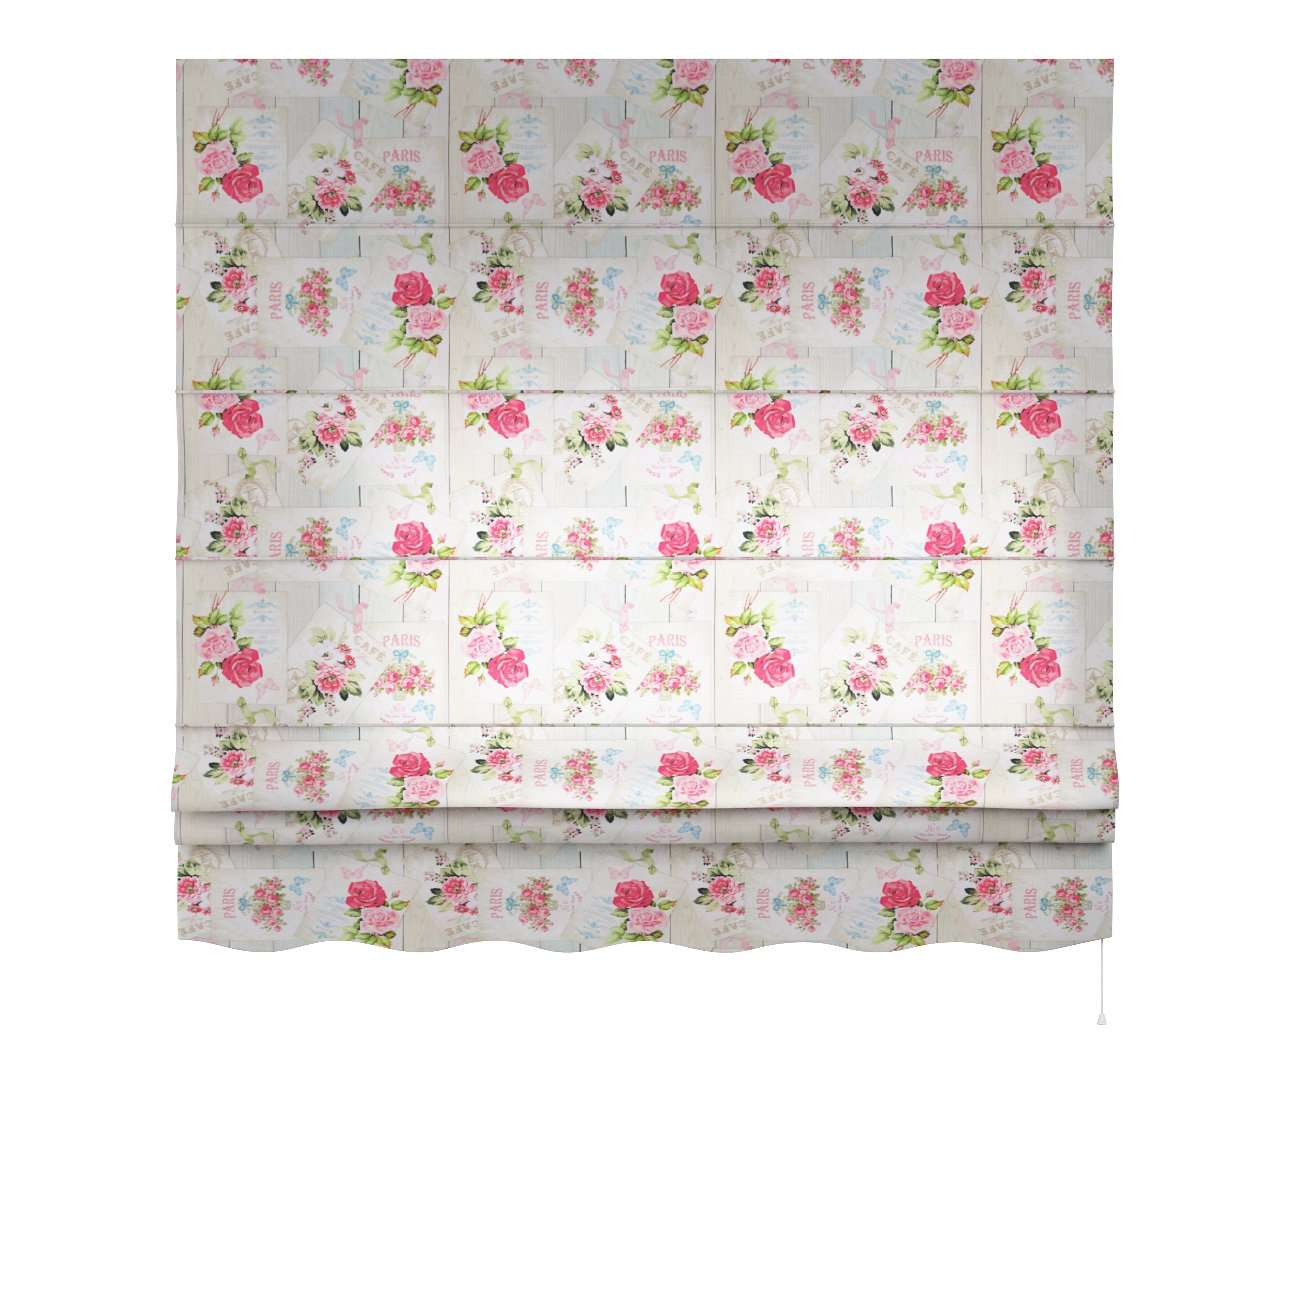 Florence roman blind  80 x 170 cm (31.5 x 67 inch) in collection Ashley, fabric: 140-19